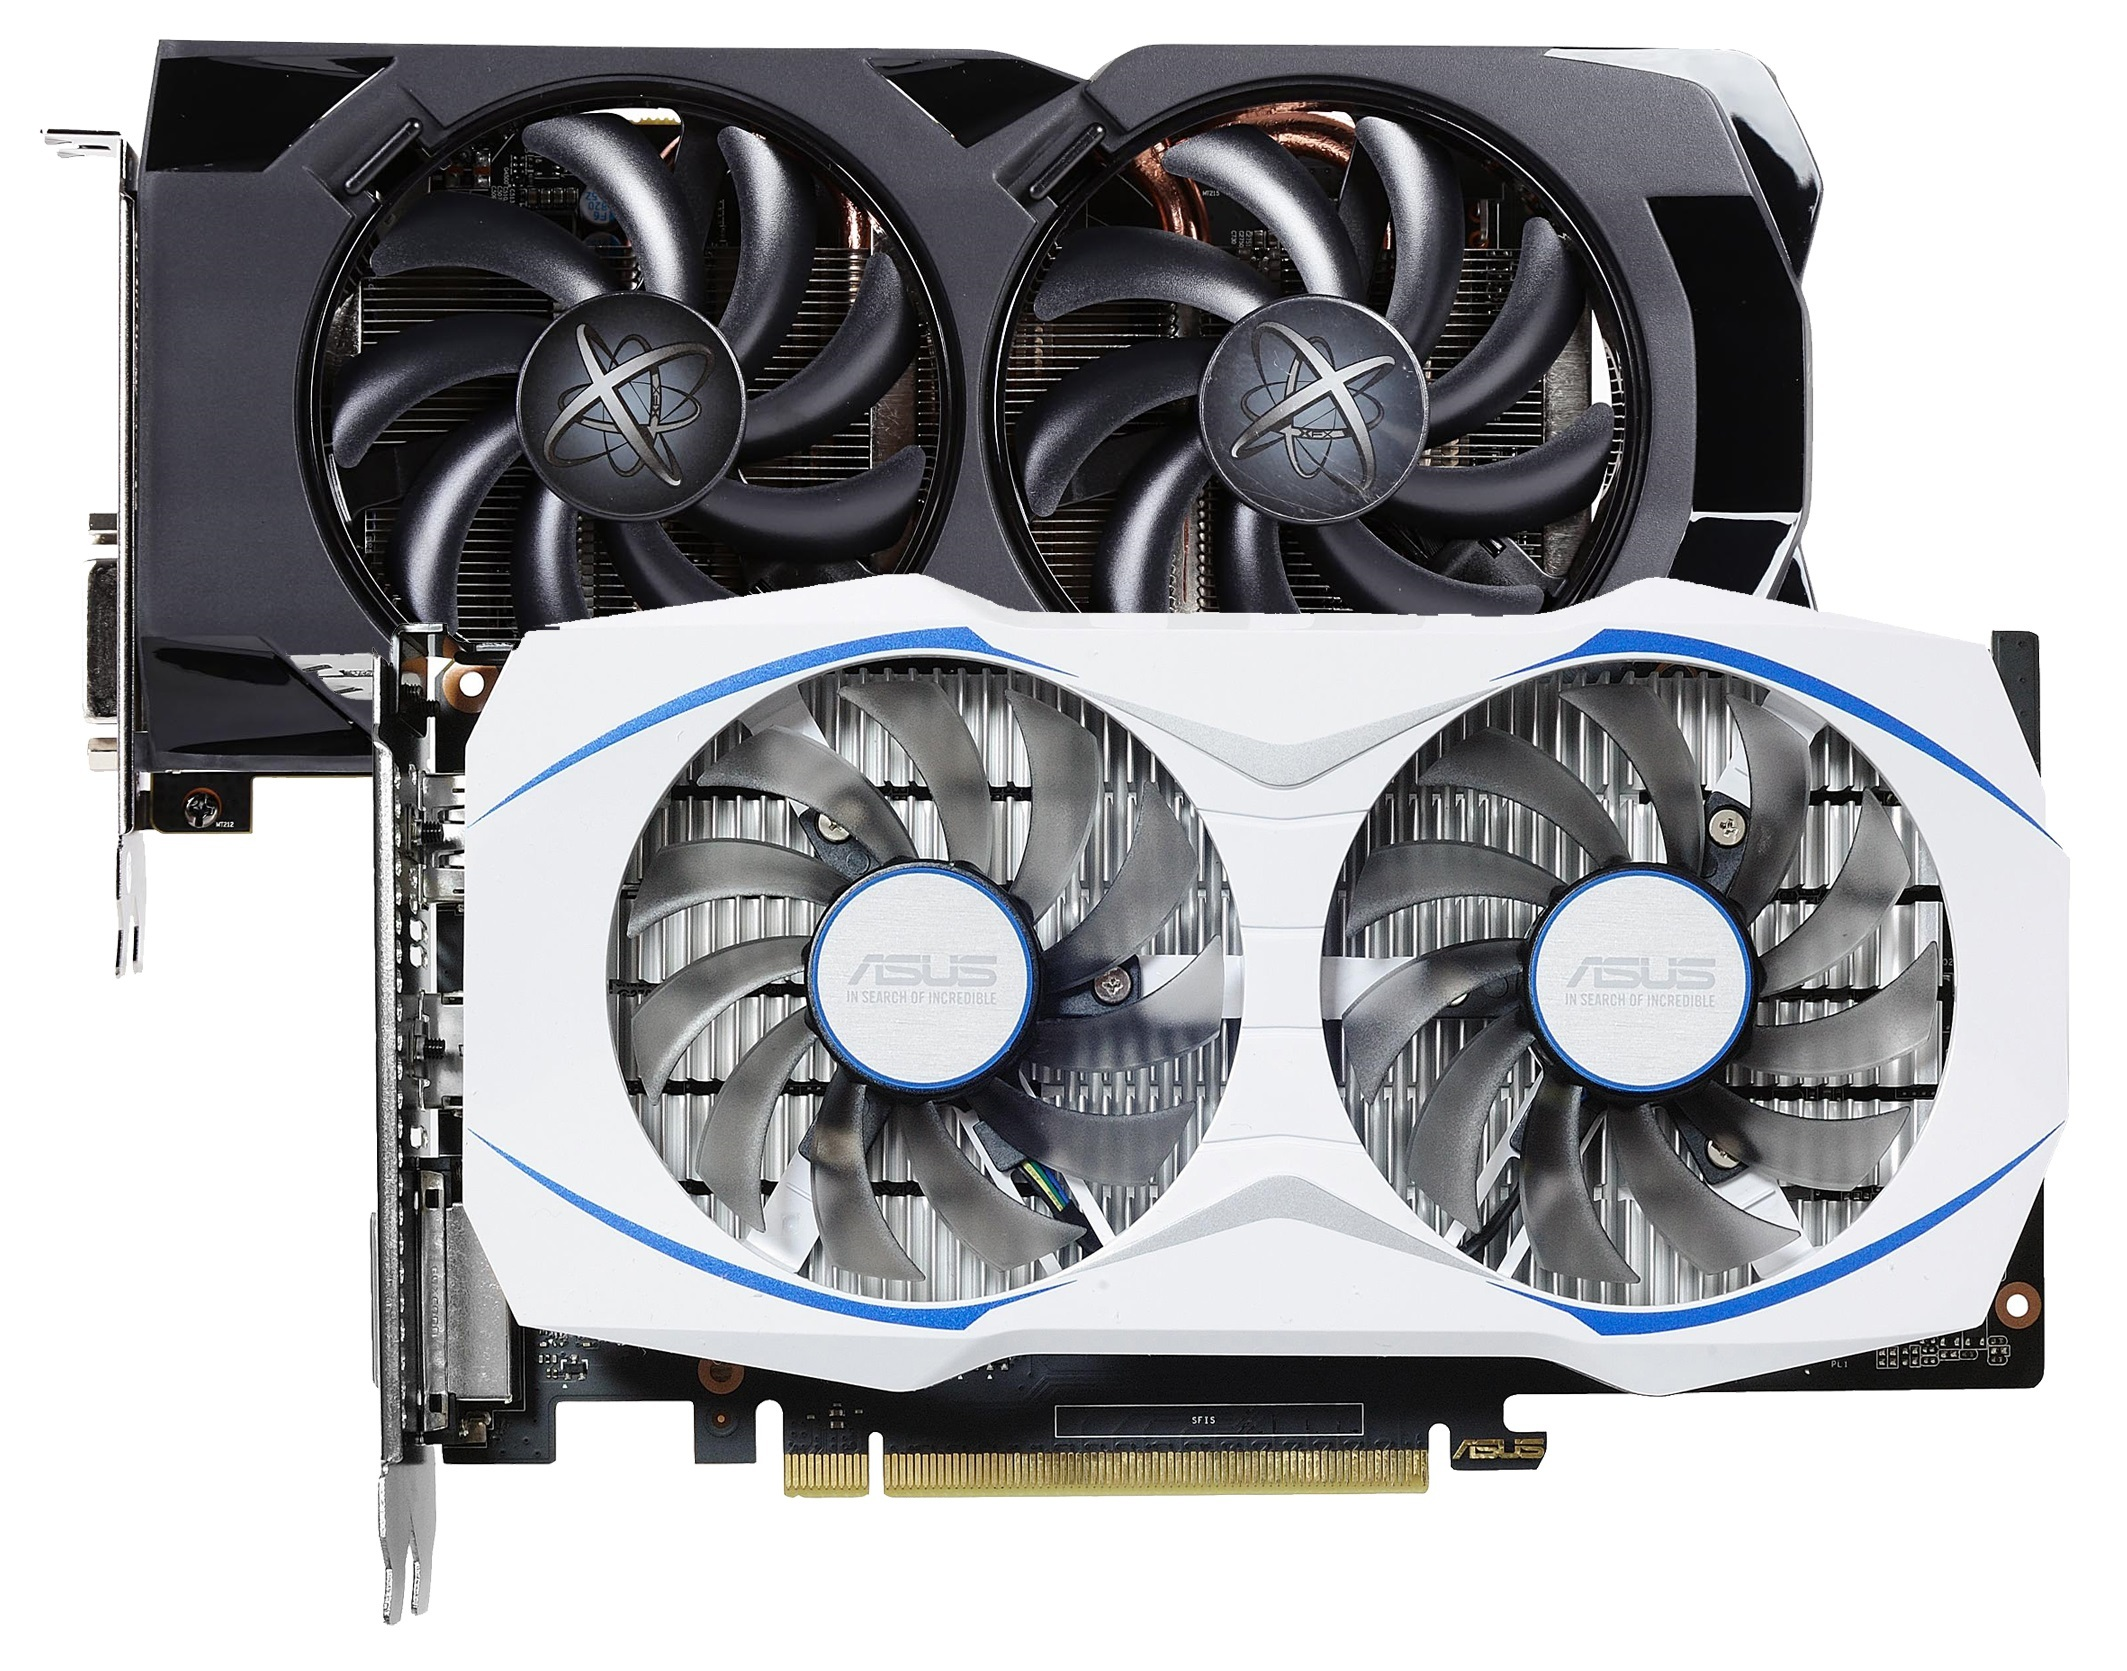 Performacne Video Cards